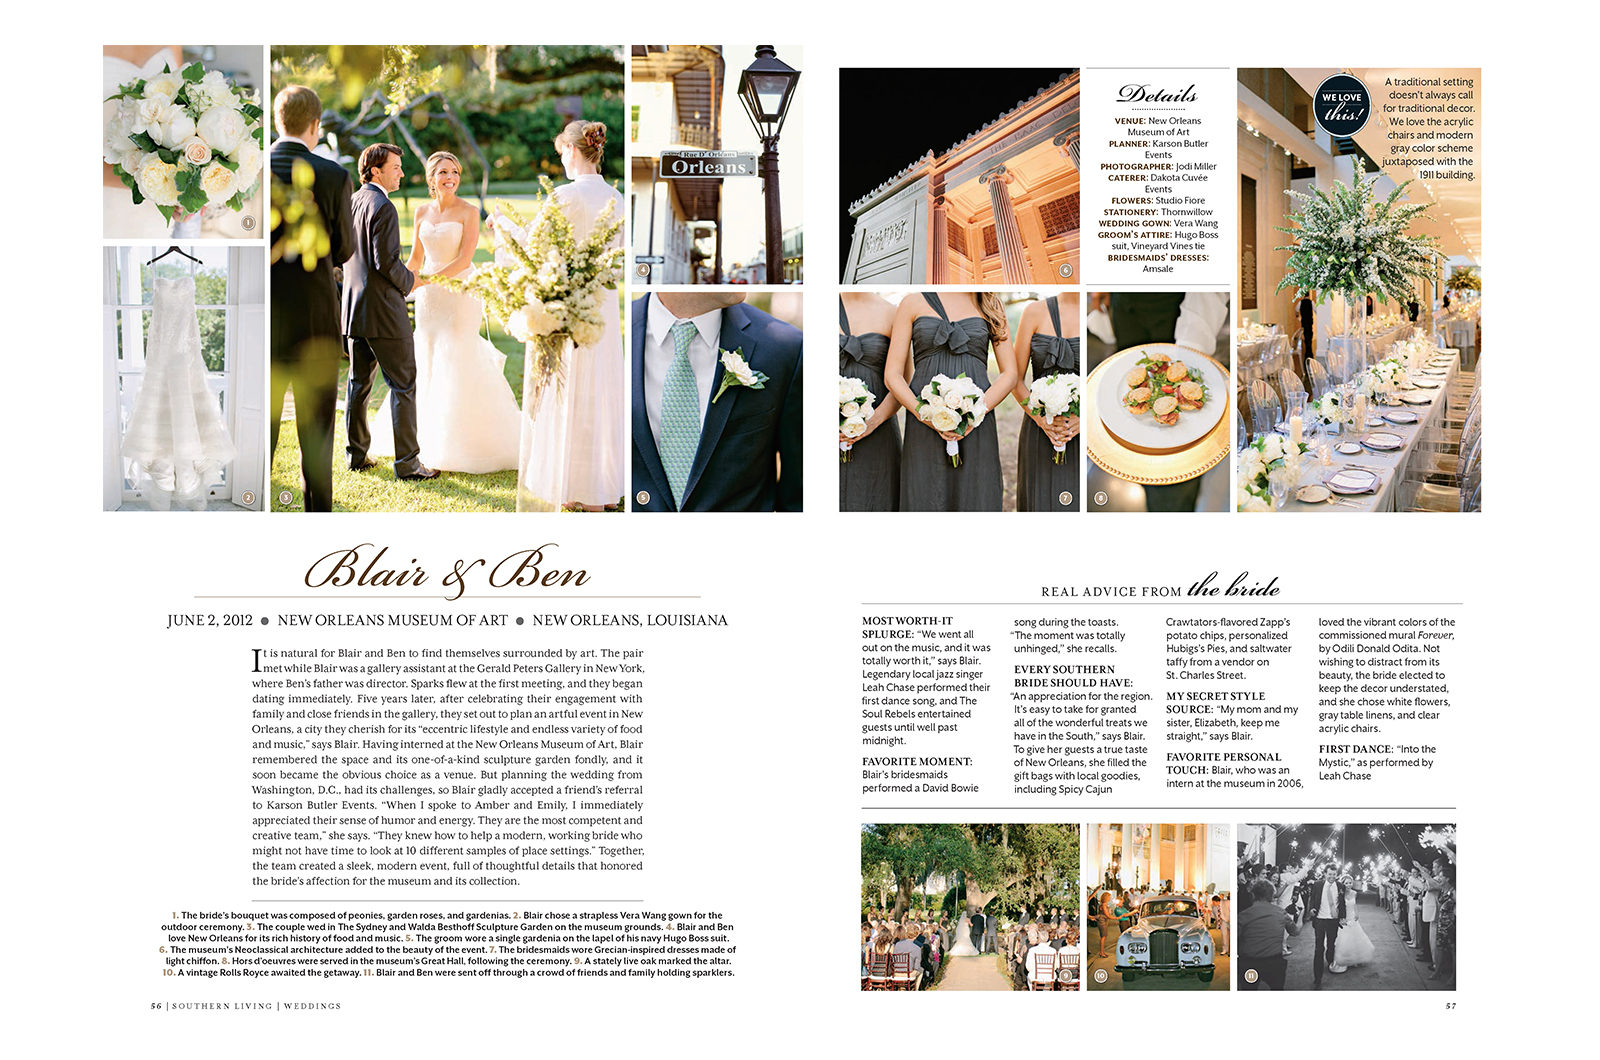 36-Southern-Living-Weddings-2012